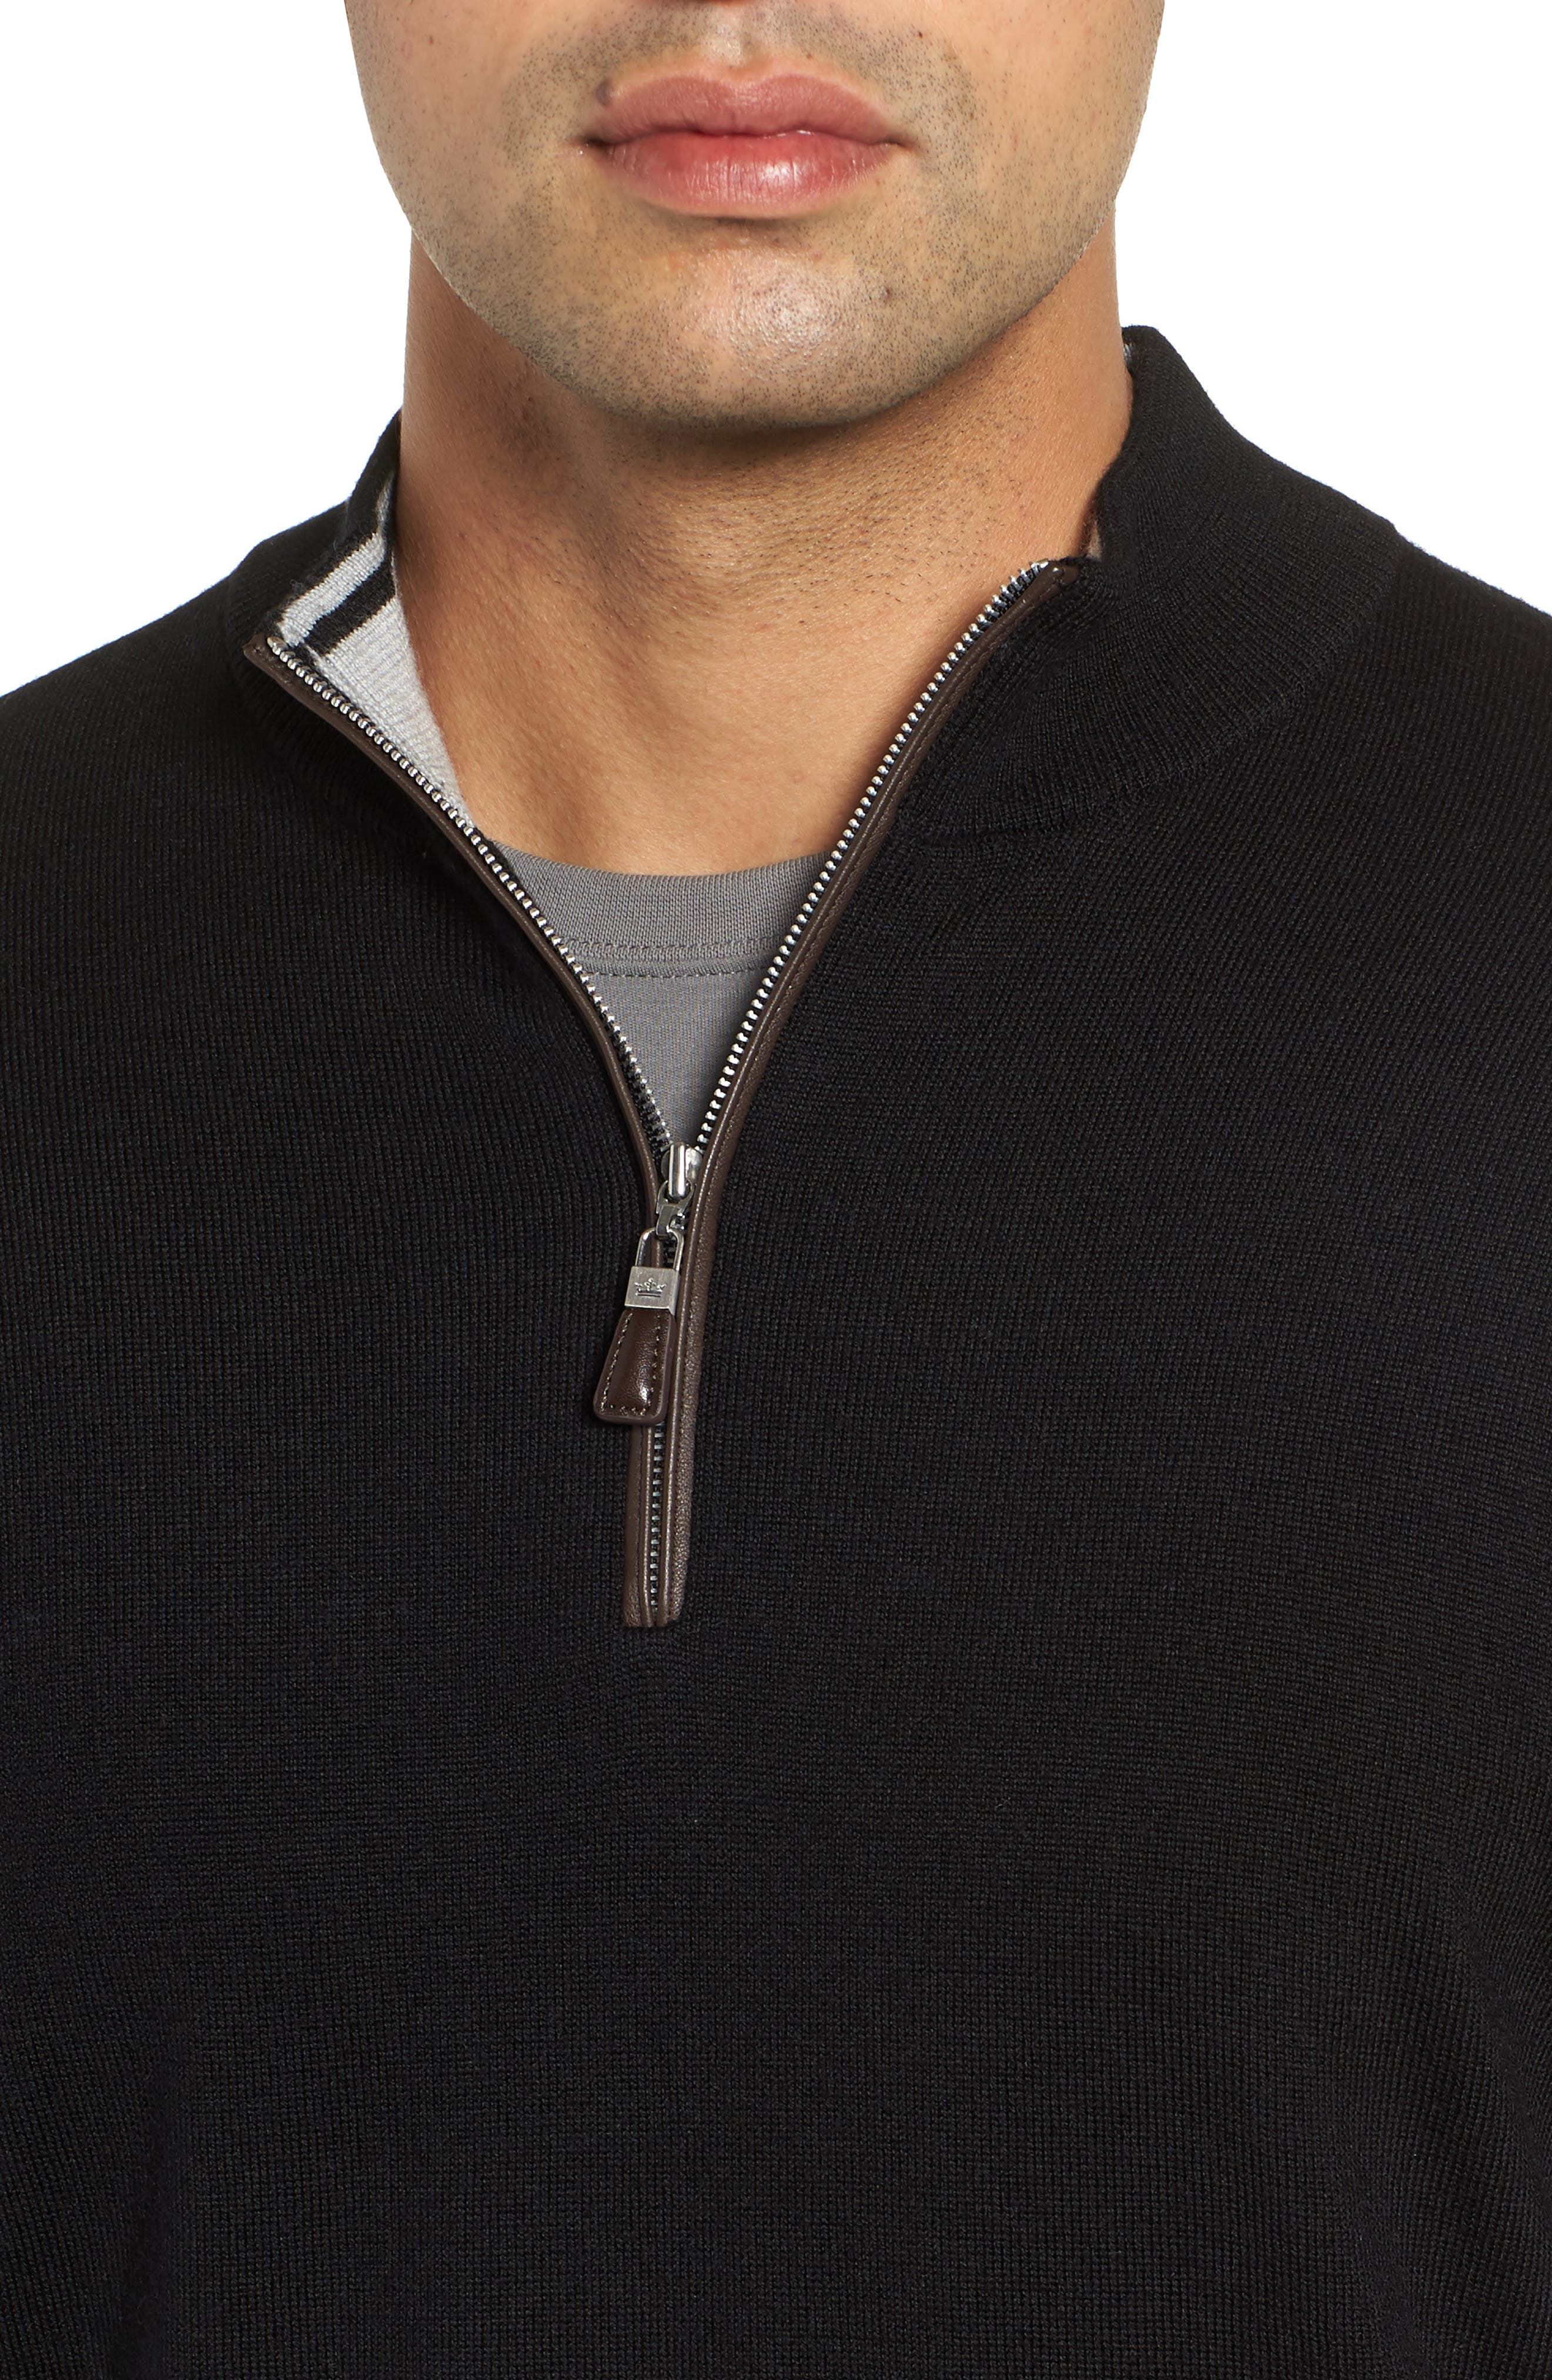 Crown Soft Wool Blend Quarter Zip Sweater,                             Alternate thumbnail 4, color,                             001